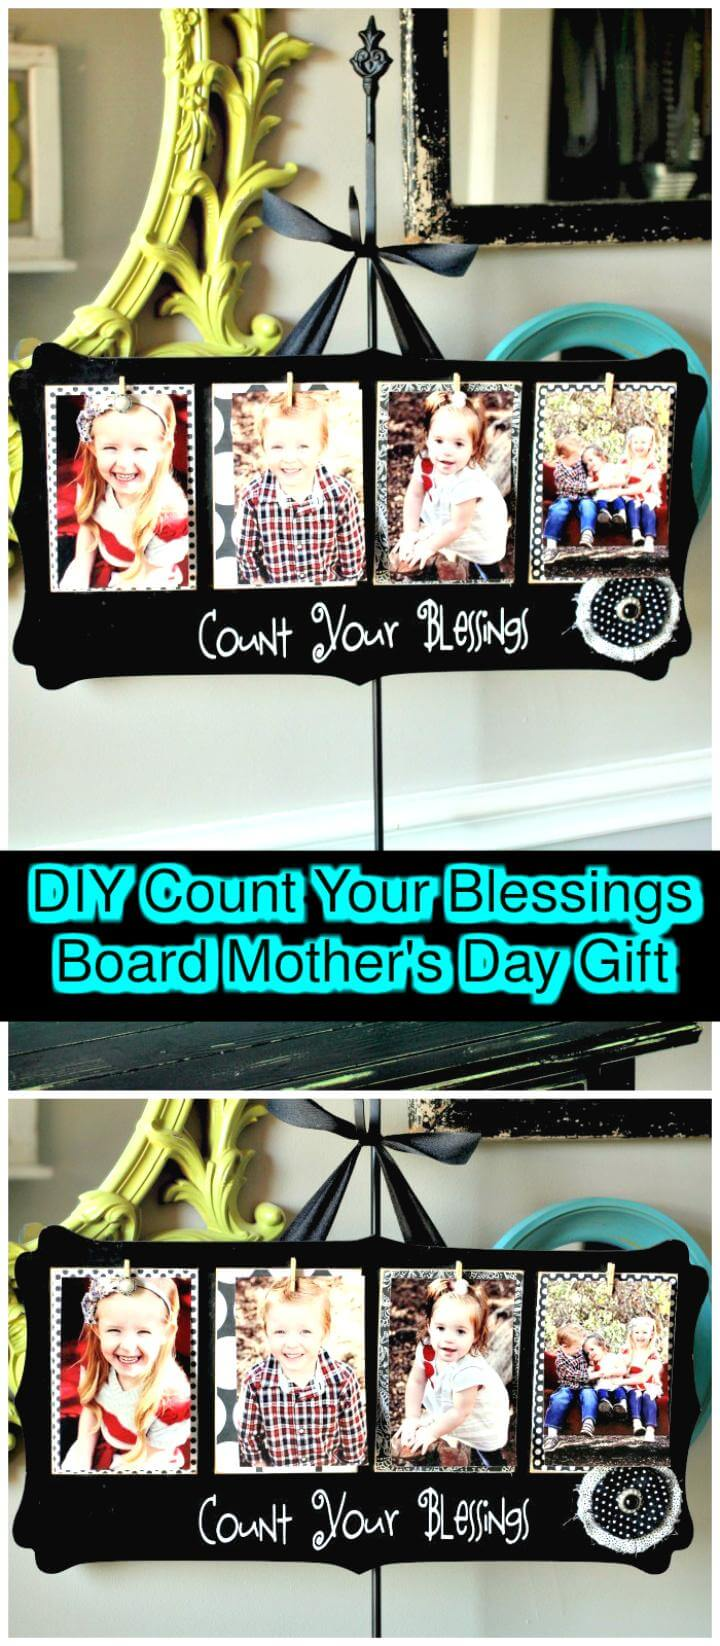 DIY count your blessings board Mother's Day Gift